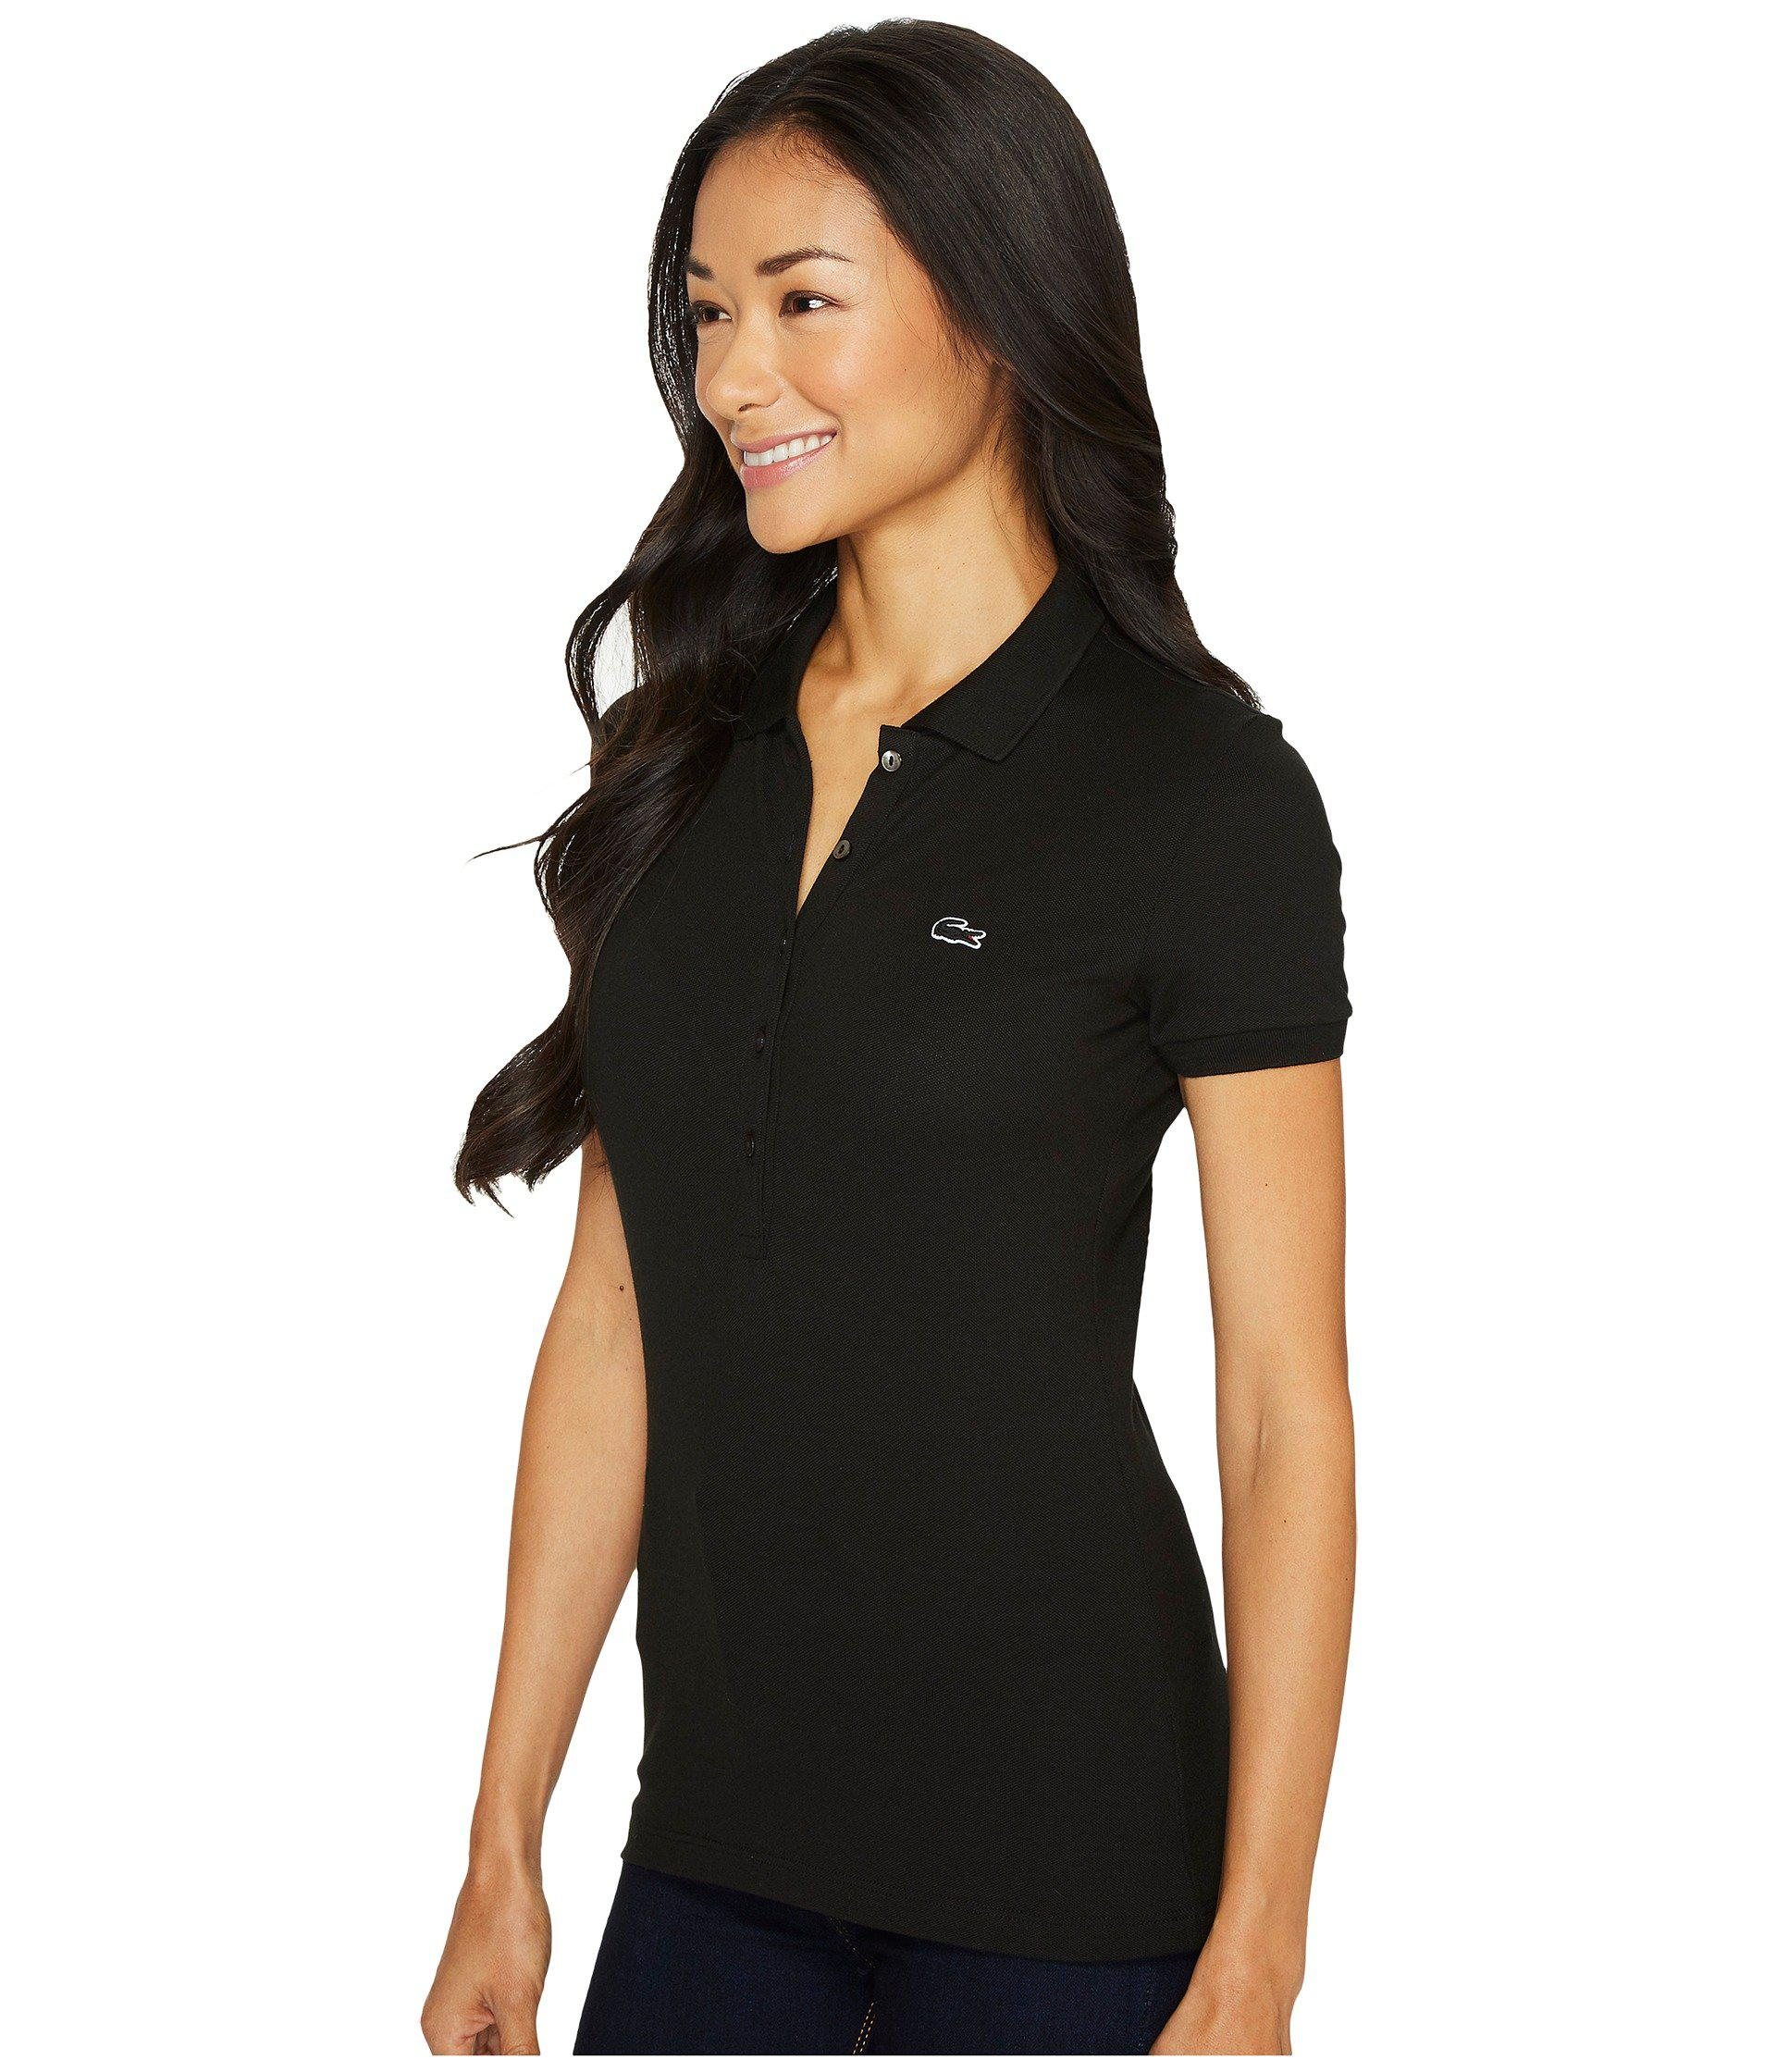 Lyst - Lacoste Short Sleeve Slim Fit Stretch Pique Polo Shirt (black)  Women s Clothing in Black e80236055d